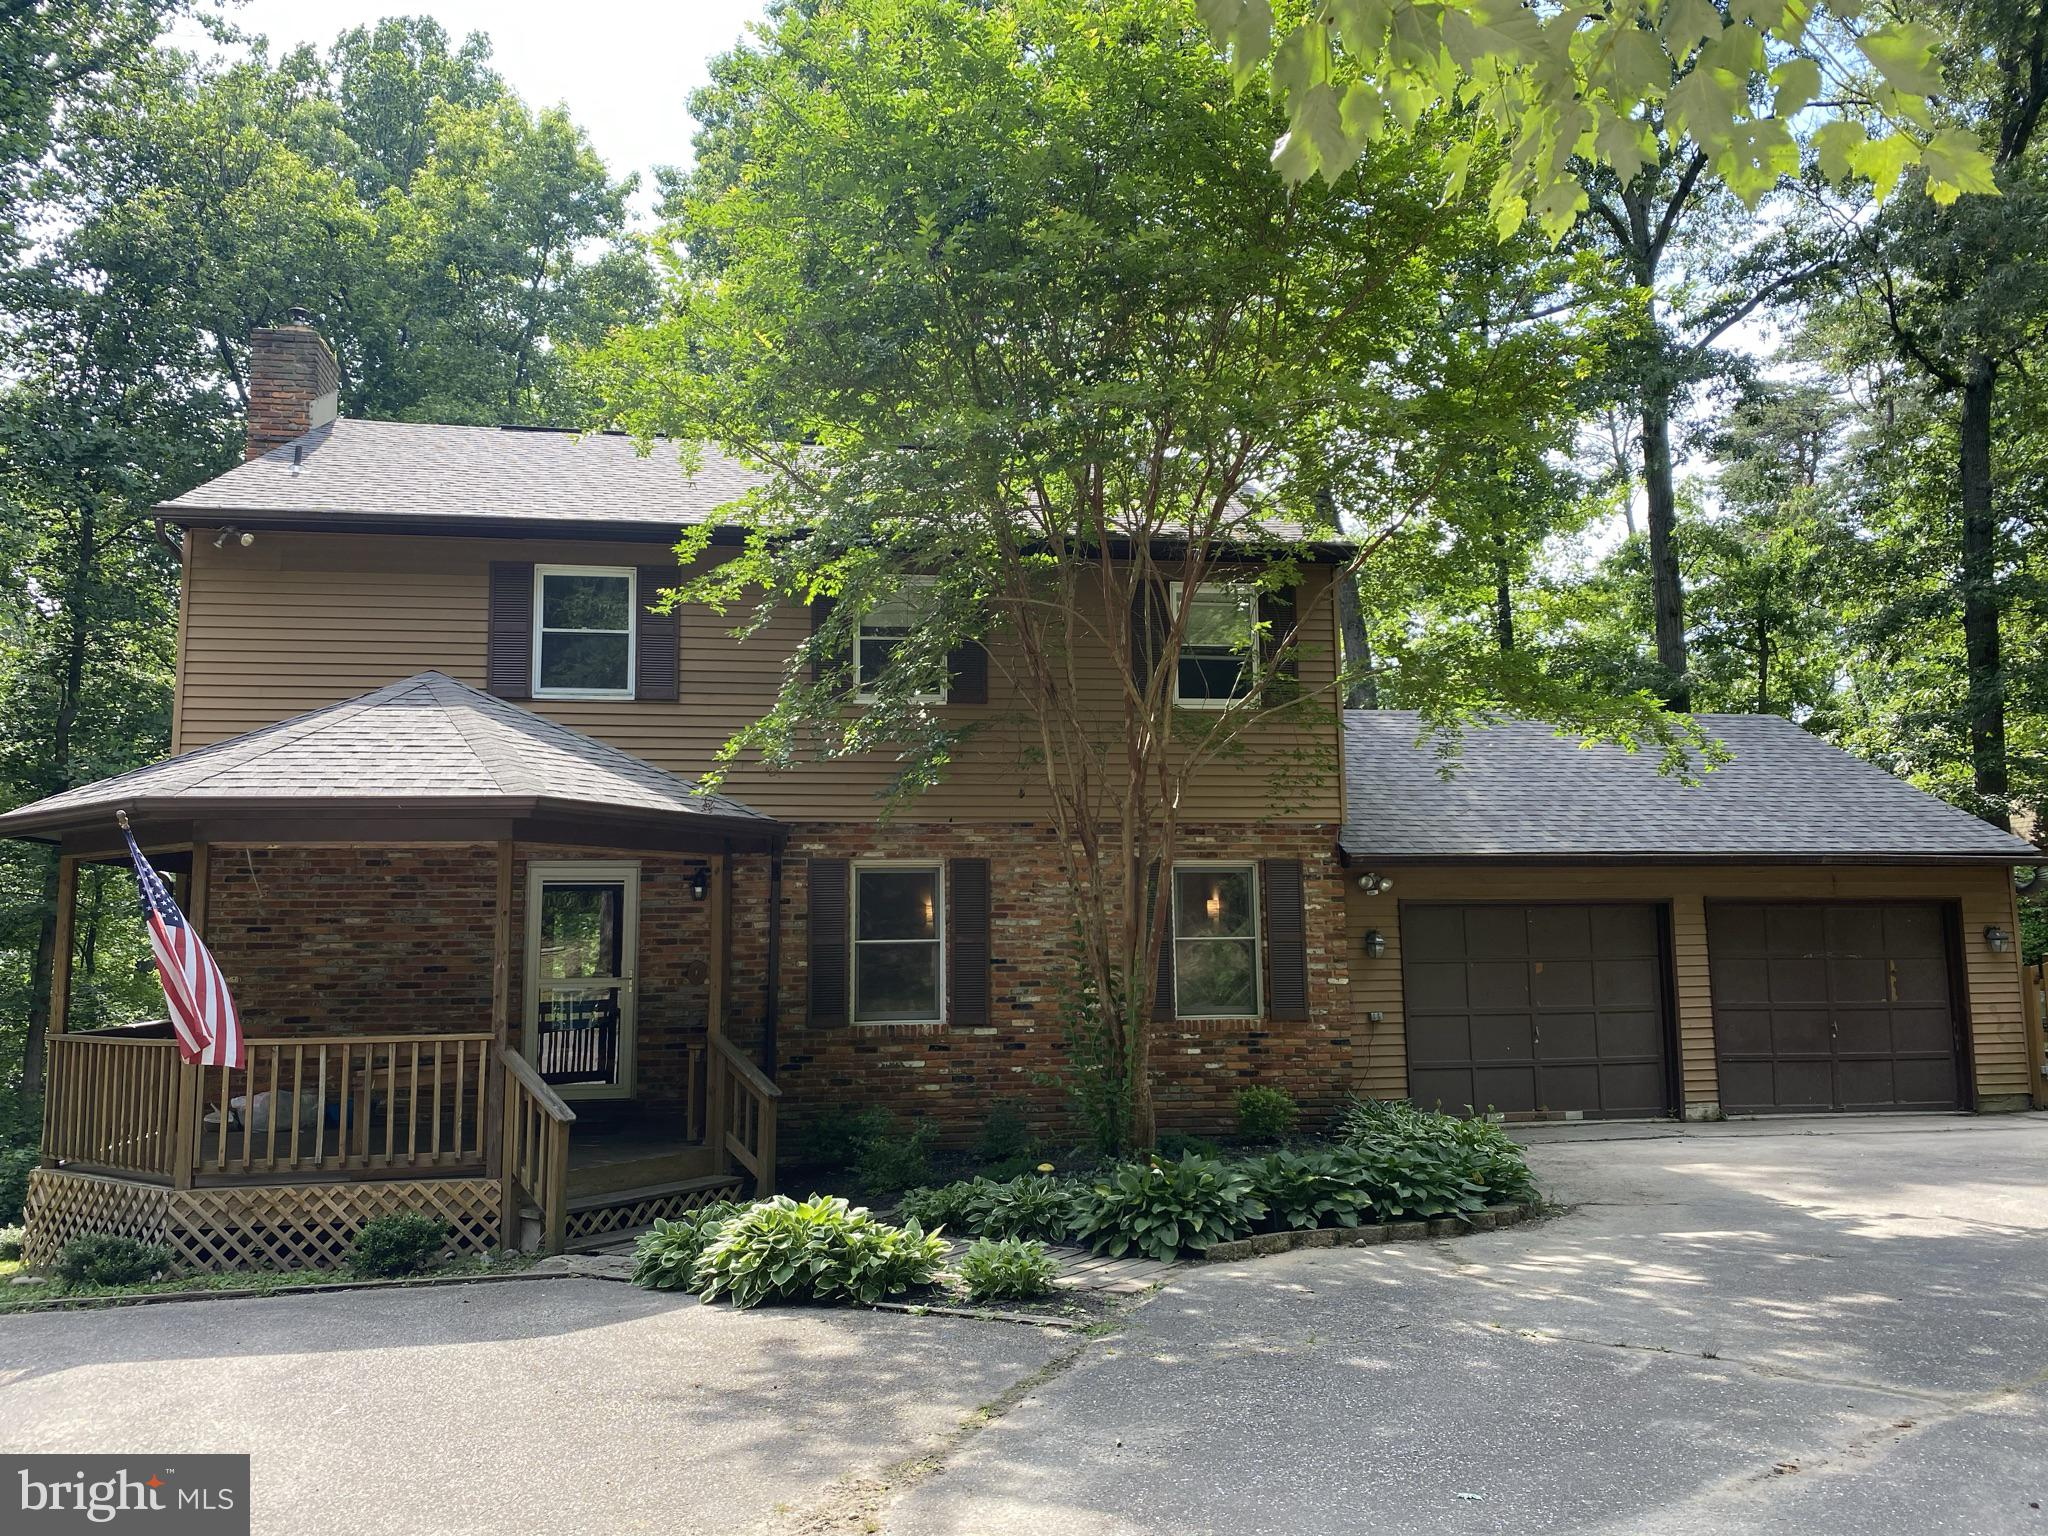 Rare find! Nestled on 1.62 wooded acres that borders State Park & Severn Run (a flowing stream off the Severn River) * 4 Large Bedrooms on upper level and separate 5th bedroom/in-law suite with full bath in finished lower level with second kitchen! Long Driveway leads you to your private oasis set back from the road - perfect for the growing family or a great space to work remotely. Beautiful wooded lot with greenspace and so many places to enjoy your morning coffee or afternoon yoga. Choose the front covered porch, the back deck & patio area, or relax in the kitchen over-looking the wooded back yard. Lots of natural light flows through this open kitchen with breakfast bar, and charming family room with pellet stove. Separate dining room and living room add even more living space!  Master Bedroom with two closets, updated bathroom. Roof has been replaced in the past 4 years. This hideaway has a two car garage, outdoor shed, separate potting shed, fire pit area...with a little outdoor love this could truly be a gardeners delight! Bring your family and your custom touches & make this your perfect dream home! Minutes to NSA, Fort Meade, Annapolis, and conveniently located in between DC & Baltimore.